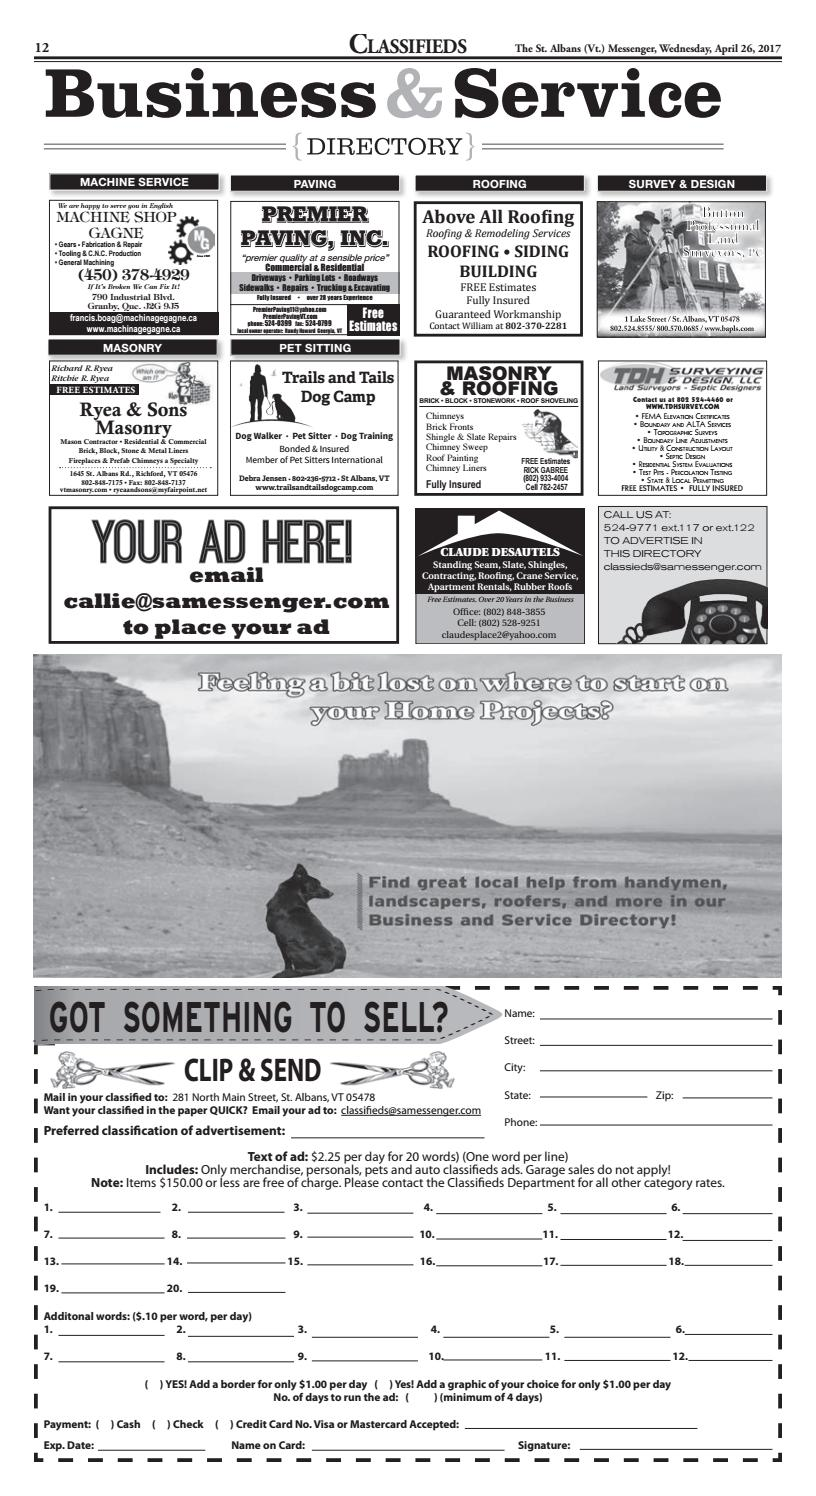 04 26 2017 Classifieds By St Albans Messenger Issuu